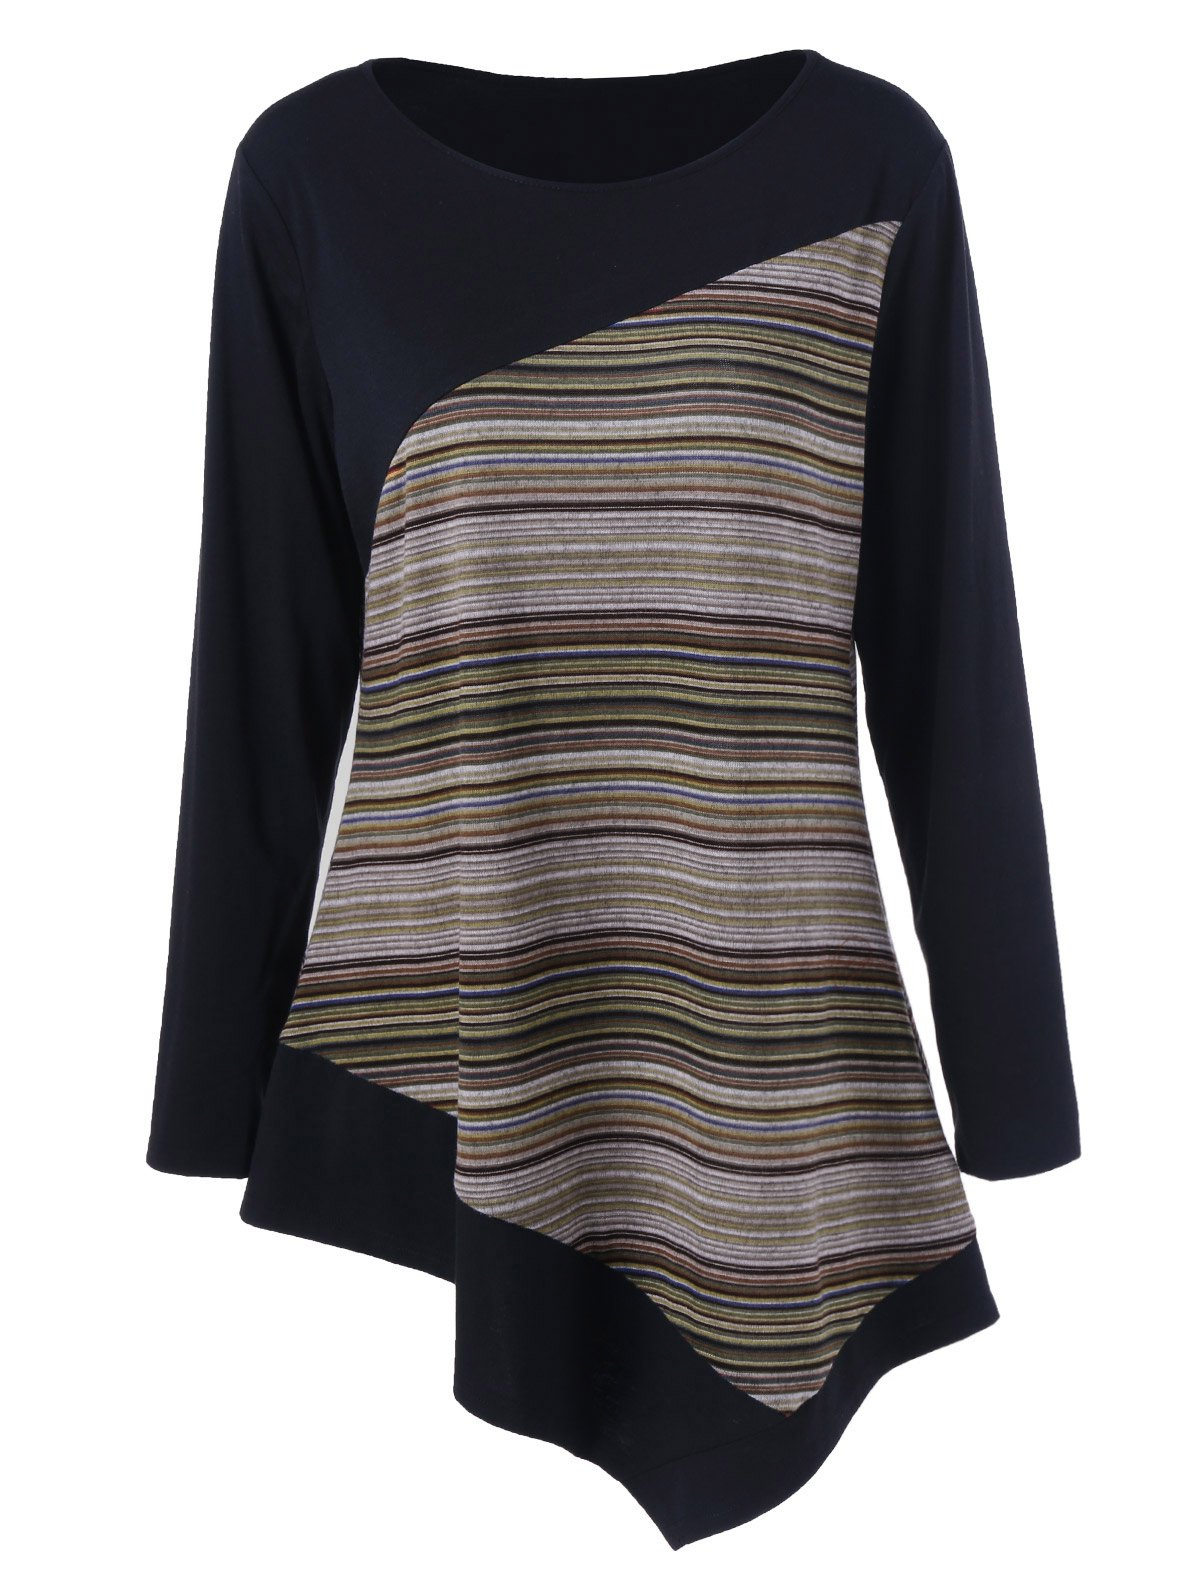 Long Sleeve Colorful Striped Asymmetric Tunic T-Shirt free shipping 10pcs 100% new lmv934ma